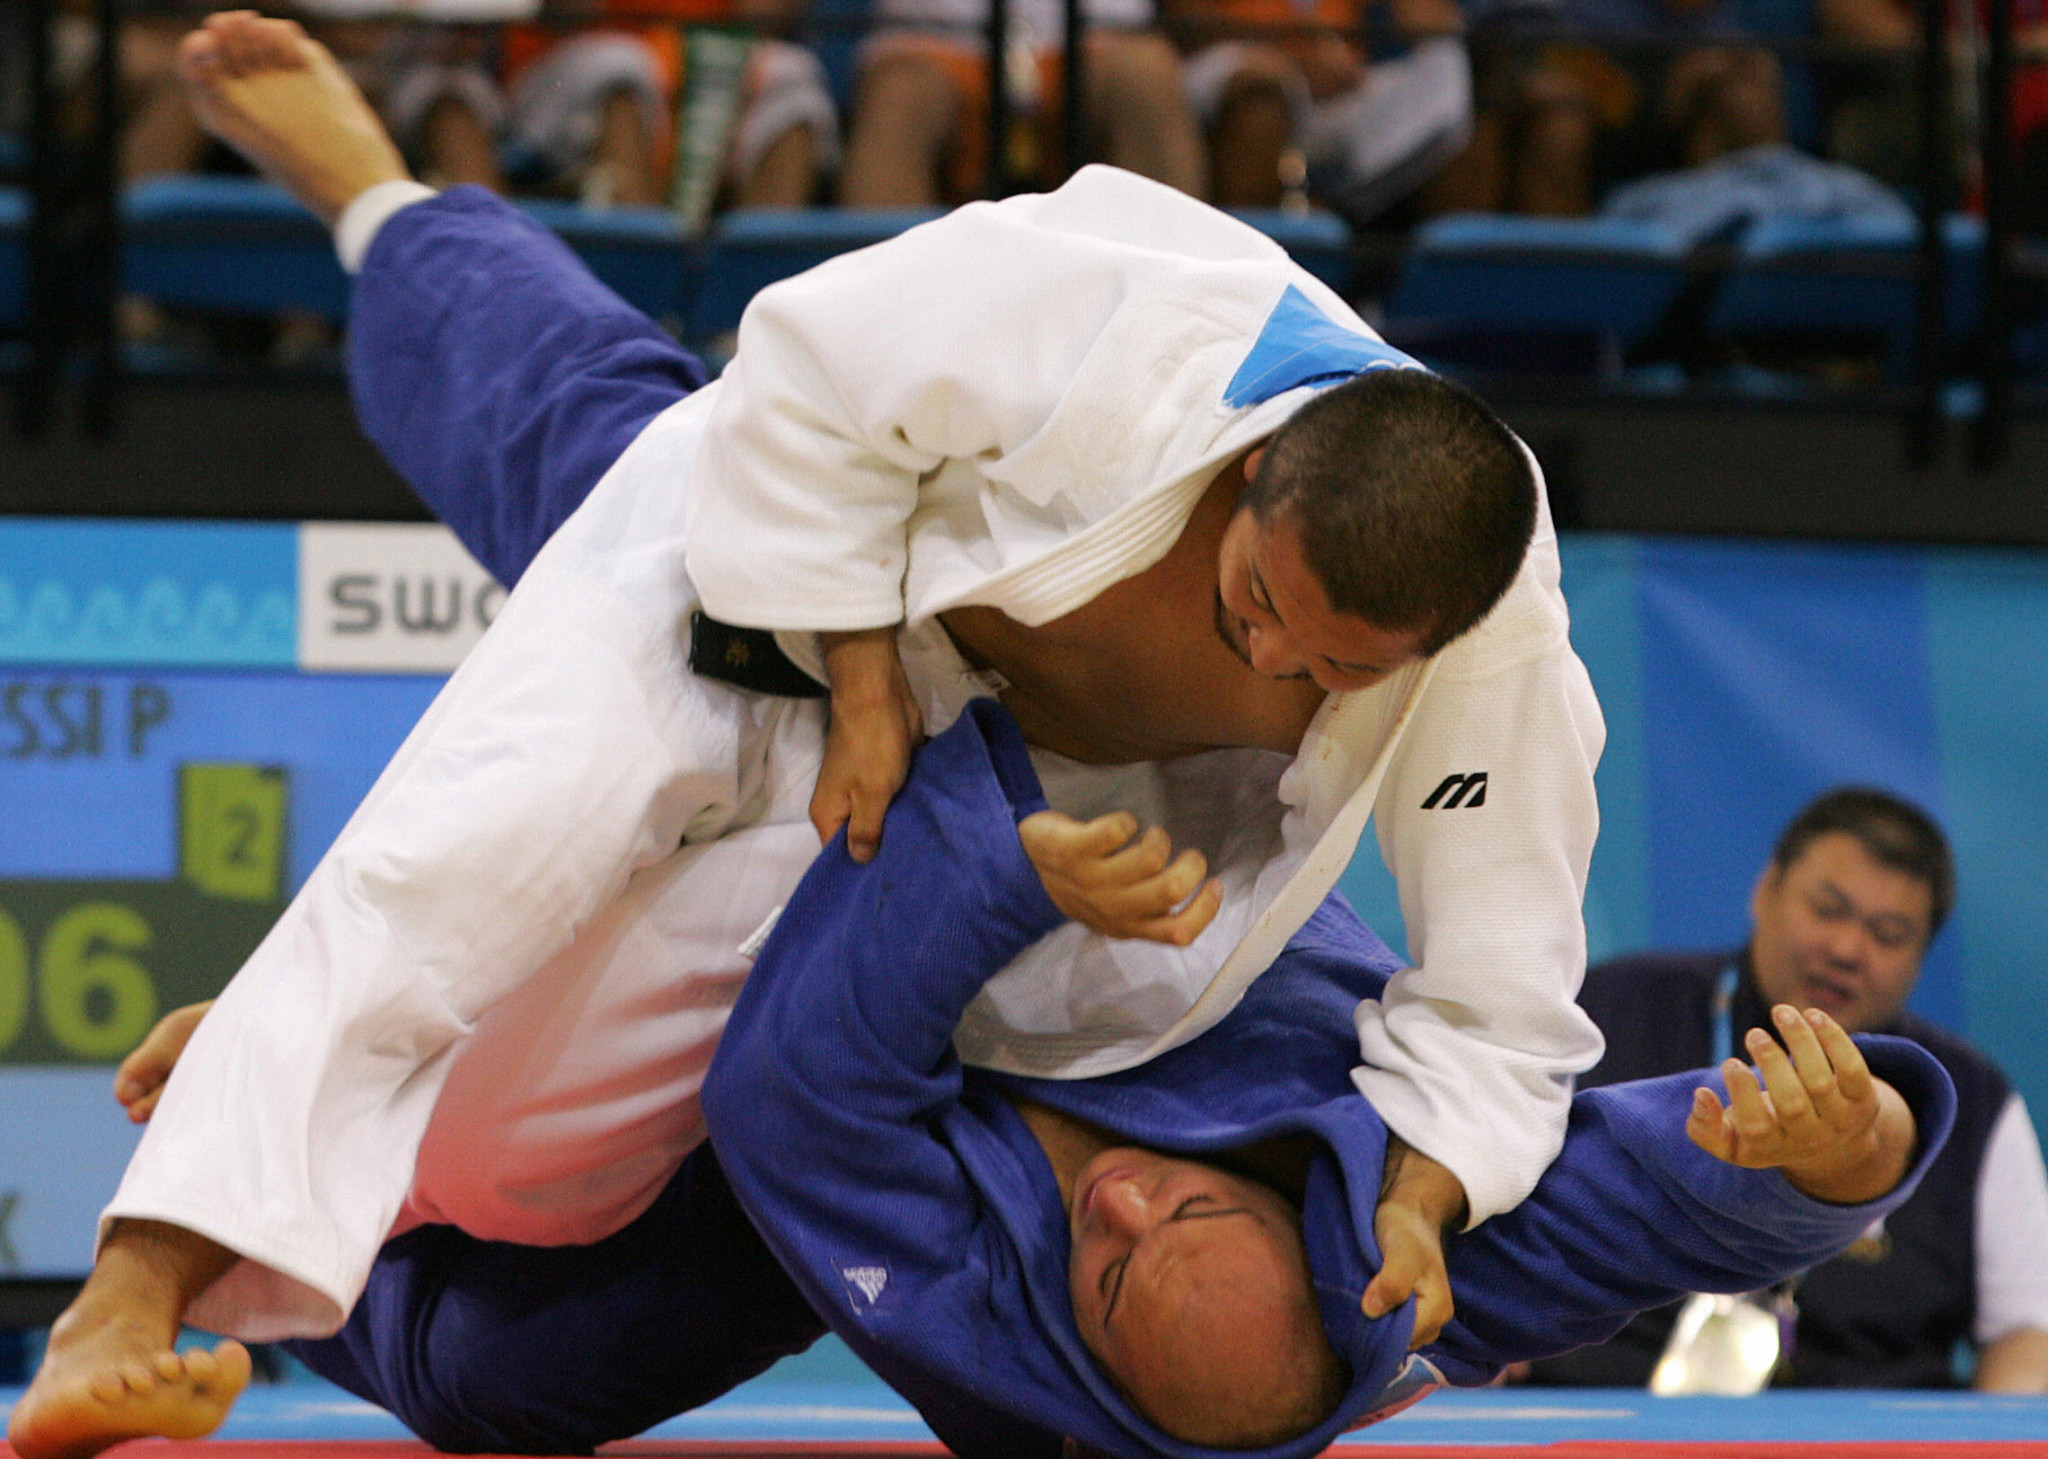 Japan's Keiji Suziki (top) fights against Italian Paolo Bianchessi during the +100 kg judo competiton at the 2004 Olympic Games in Athens 20 August 2004 ©Getty Images